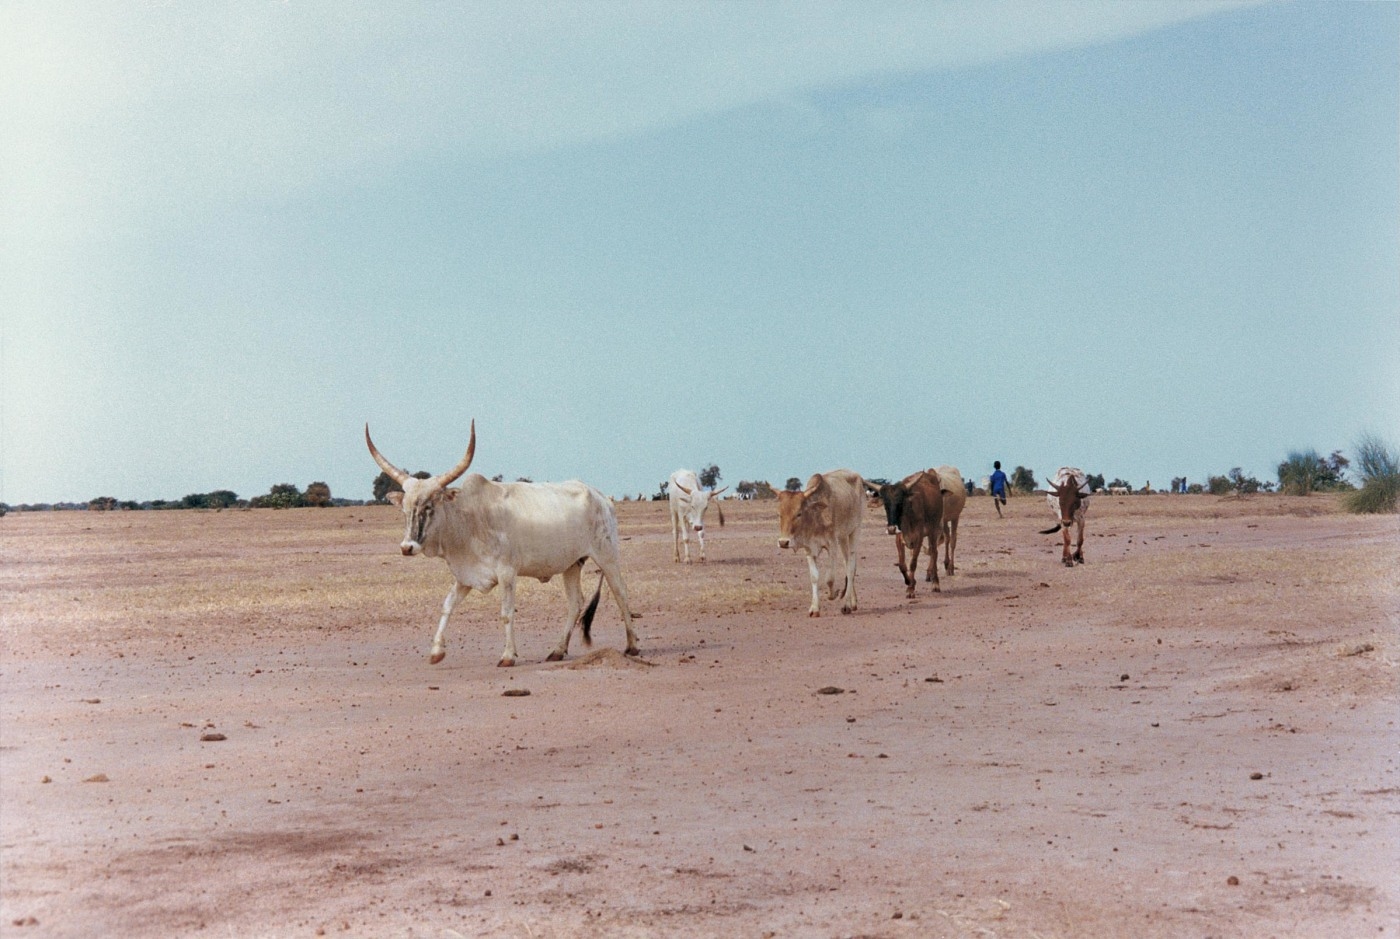 A drought in the 1960s and 1970s drove cattle herders off the dry plains of the Sahel and into the cities. In response, the Senegalese government and its neighbors resolved to spur agriculture and economic development by building dams along the Senegal Ri